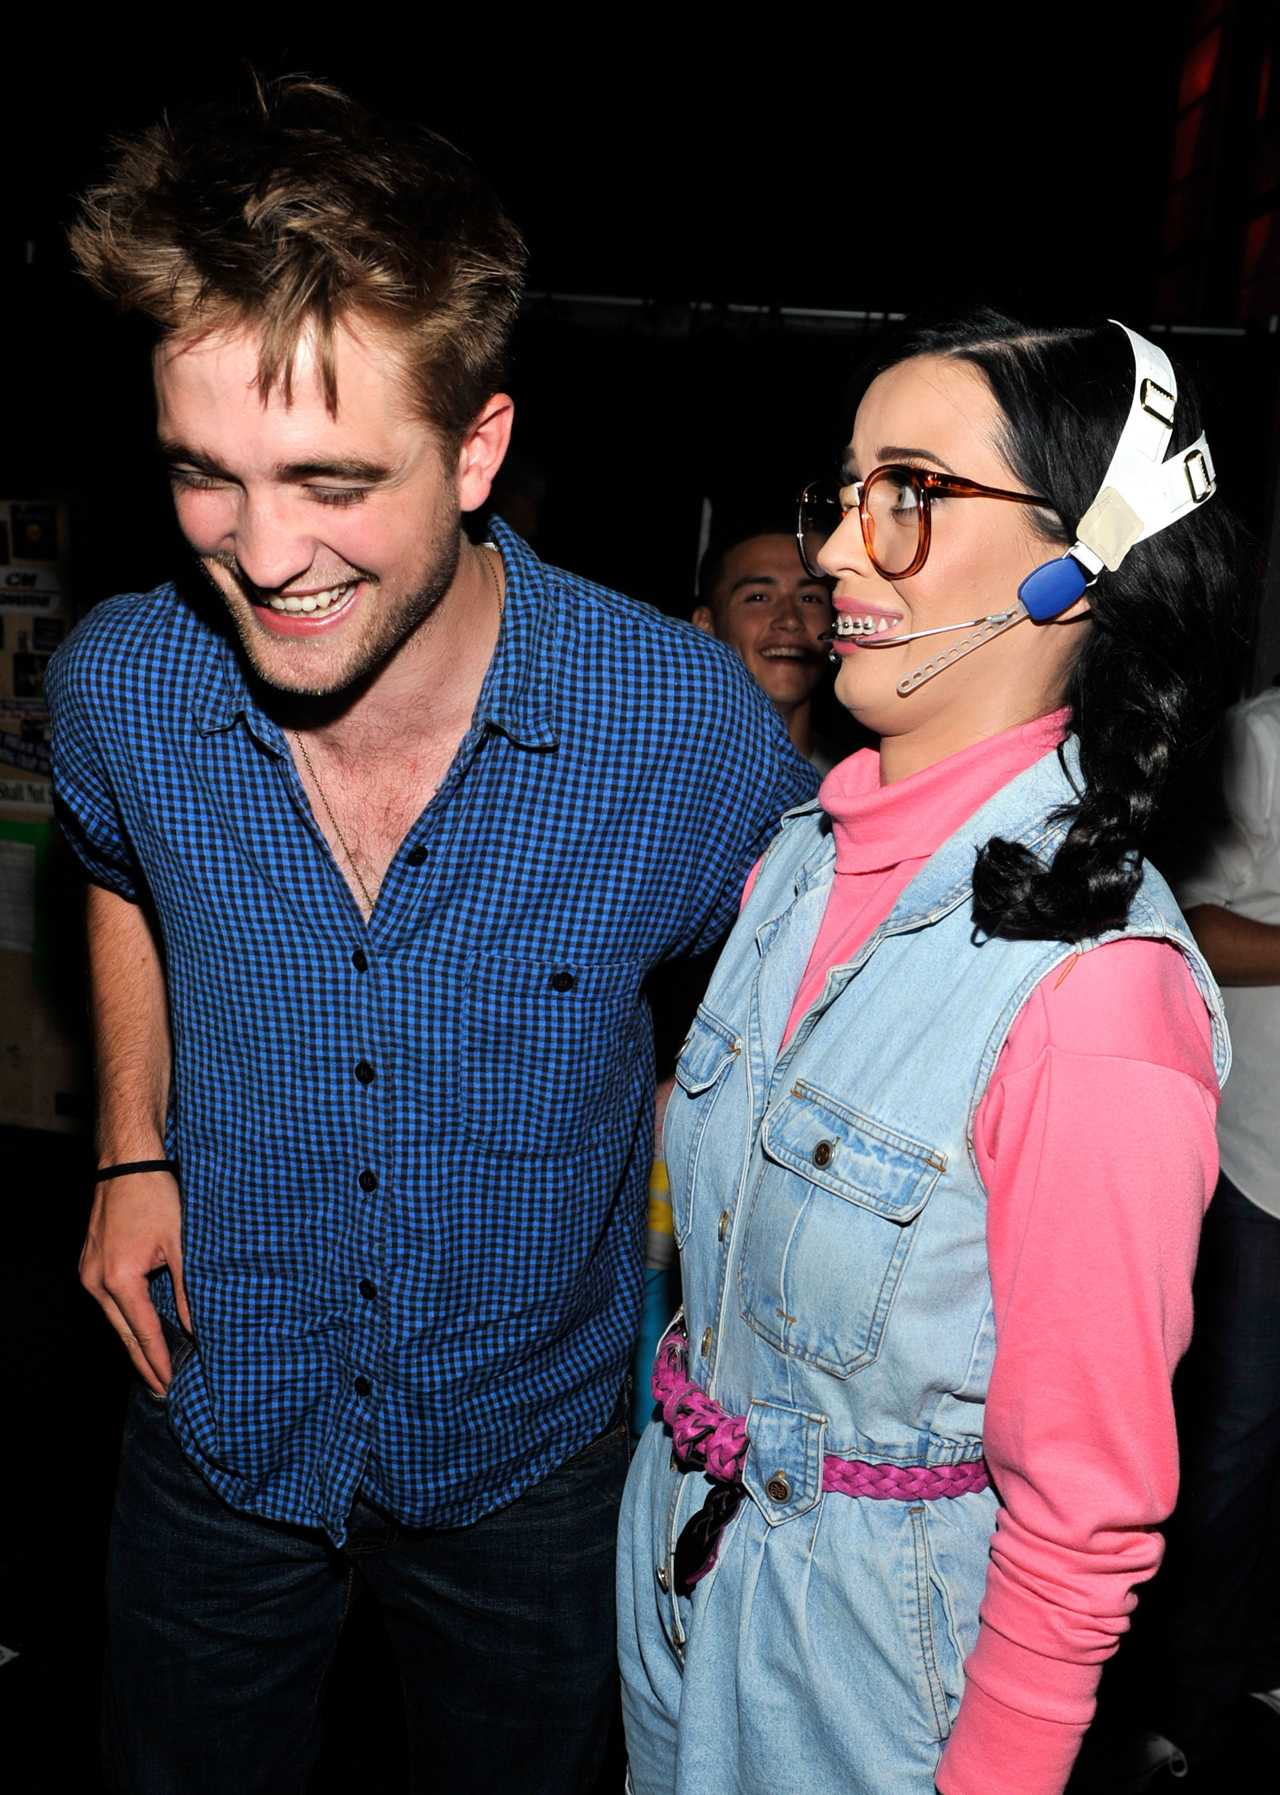 Pop Of Fun: Katy Perry And Robert Pattinson Drunkenly Sing Boyz II Men And It's Fantastic